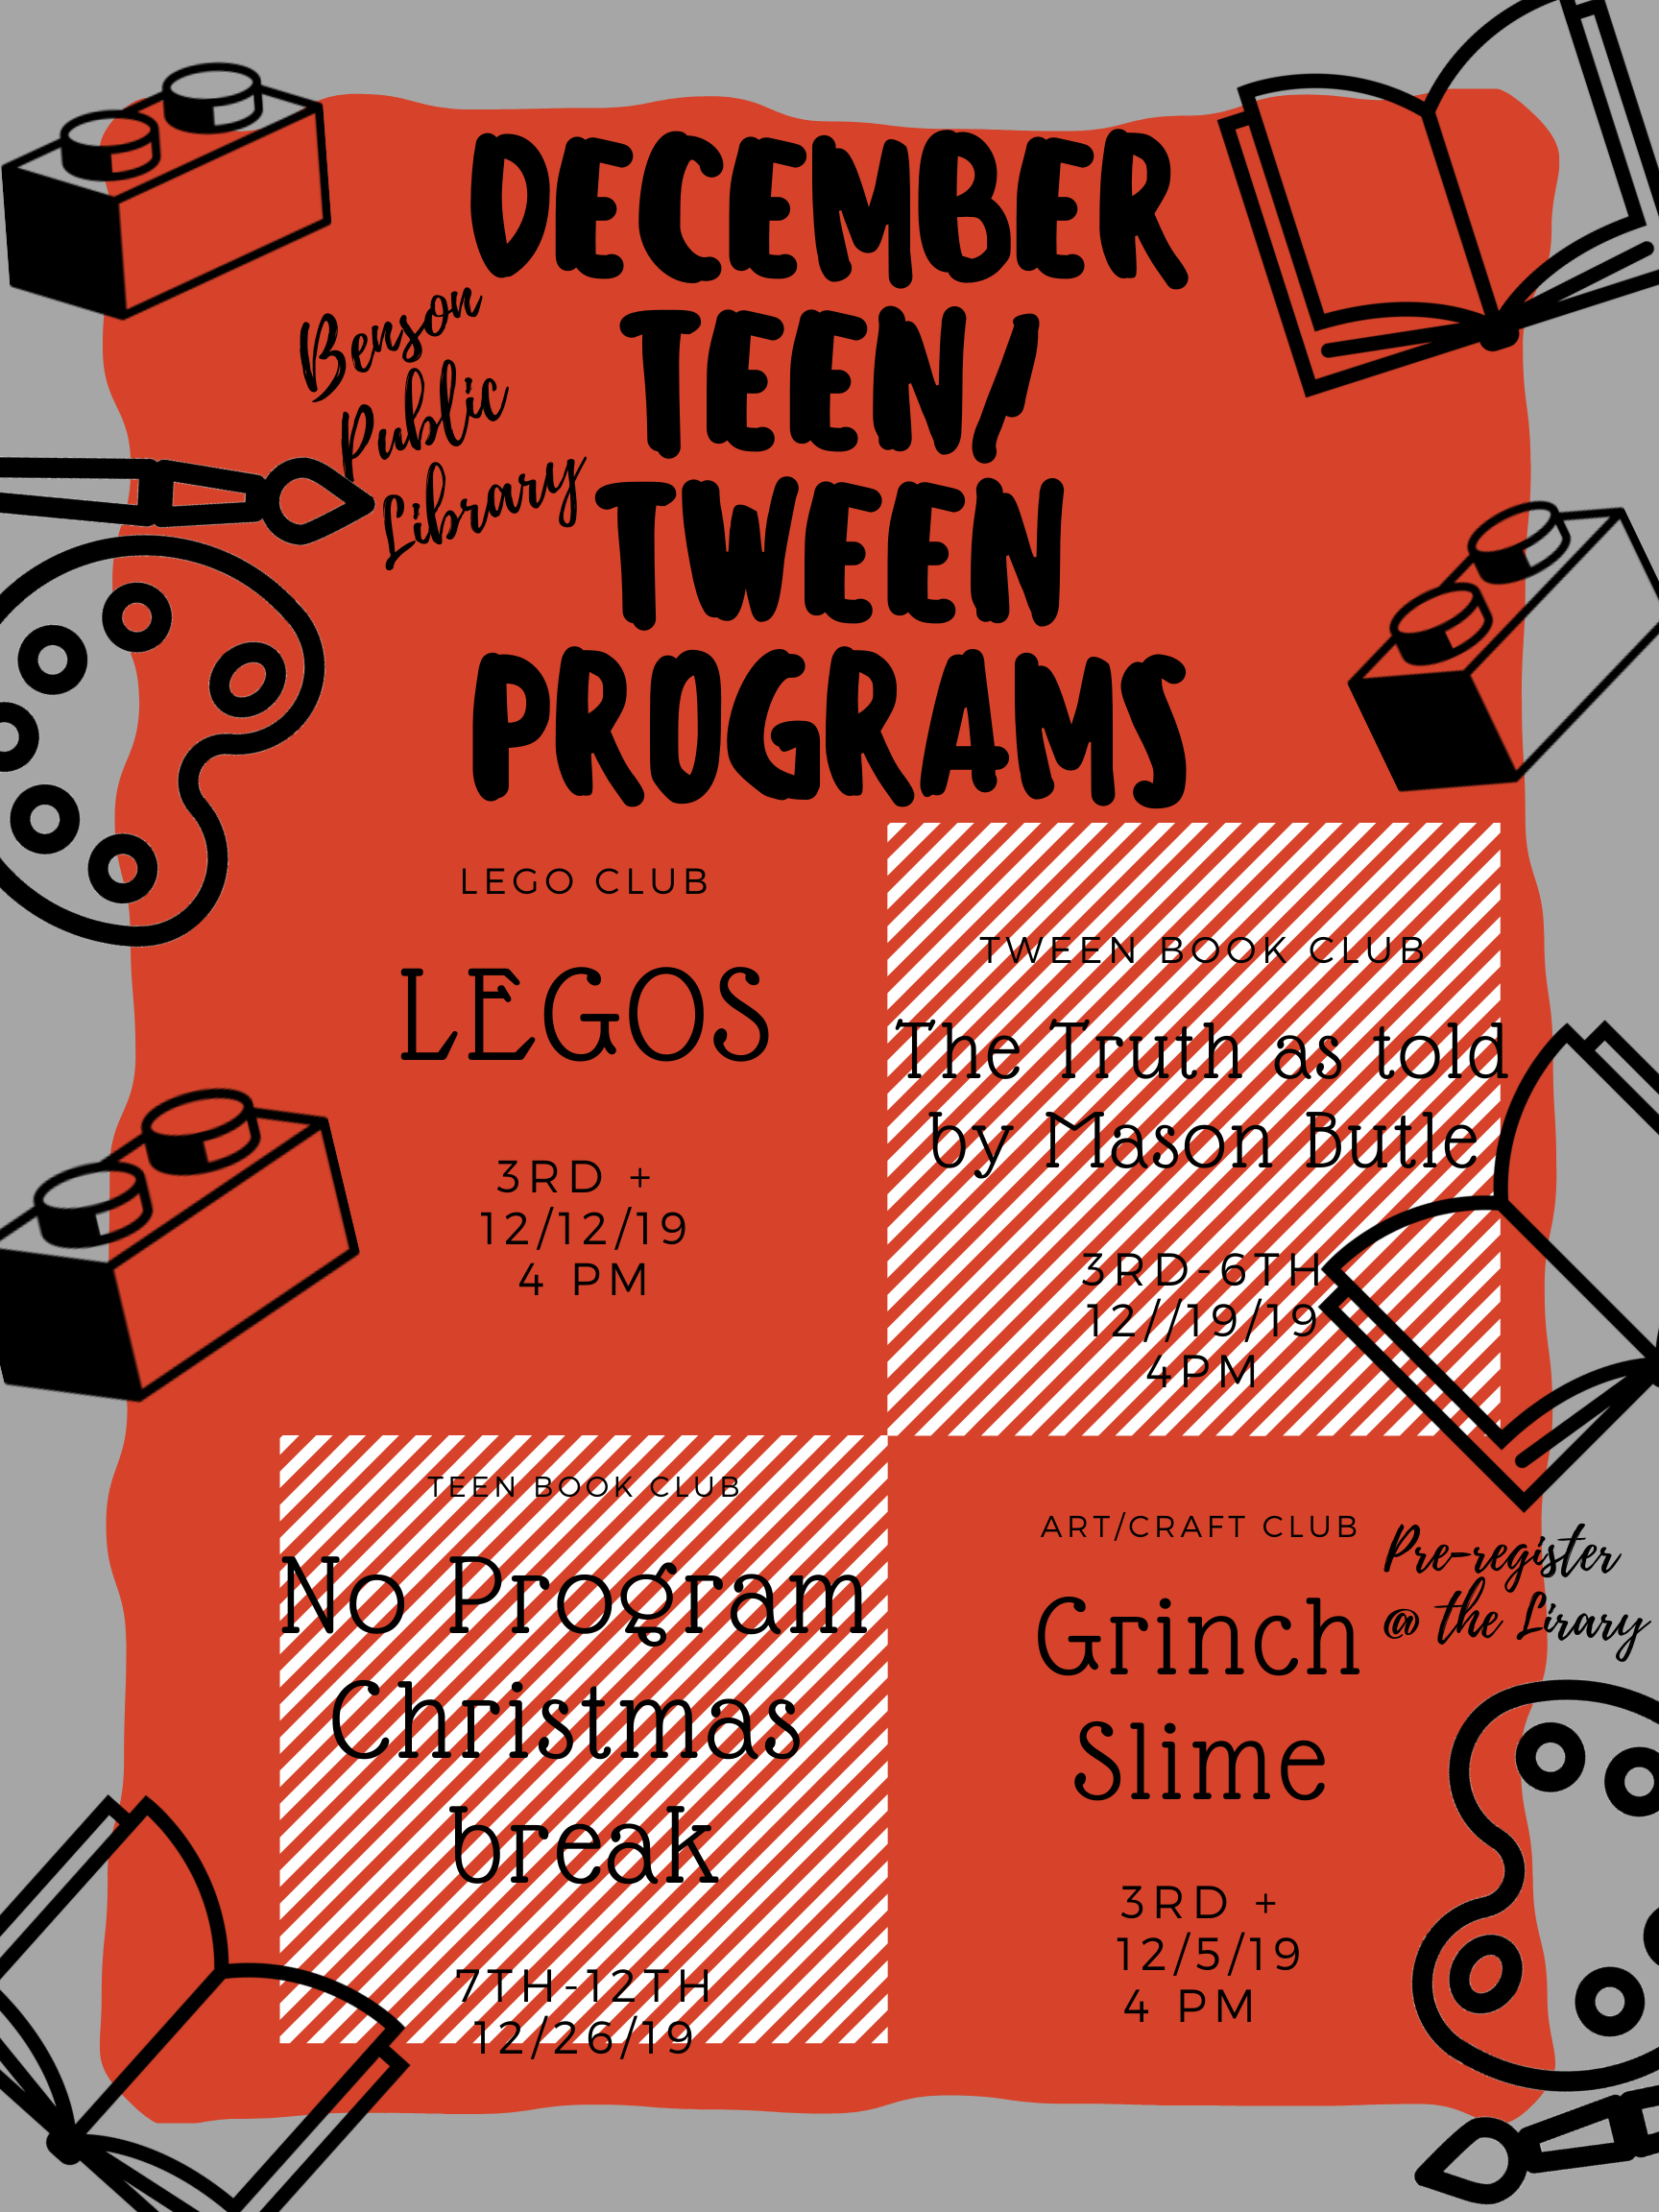 Tweens and teens 3rd Grade and up, join us for our December programs We have Grinch Slime on December 5, Lego Club on December 12, and Book Club on December 19. All programs start at 4. We do ask for registration for Slime.